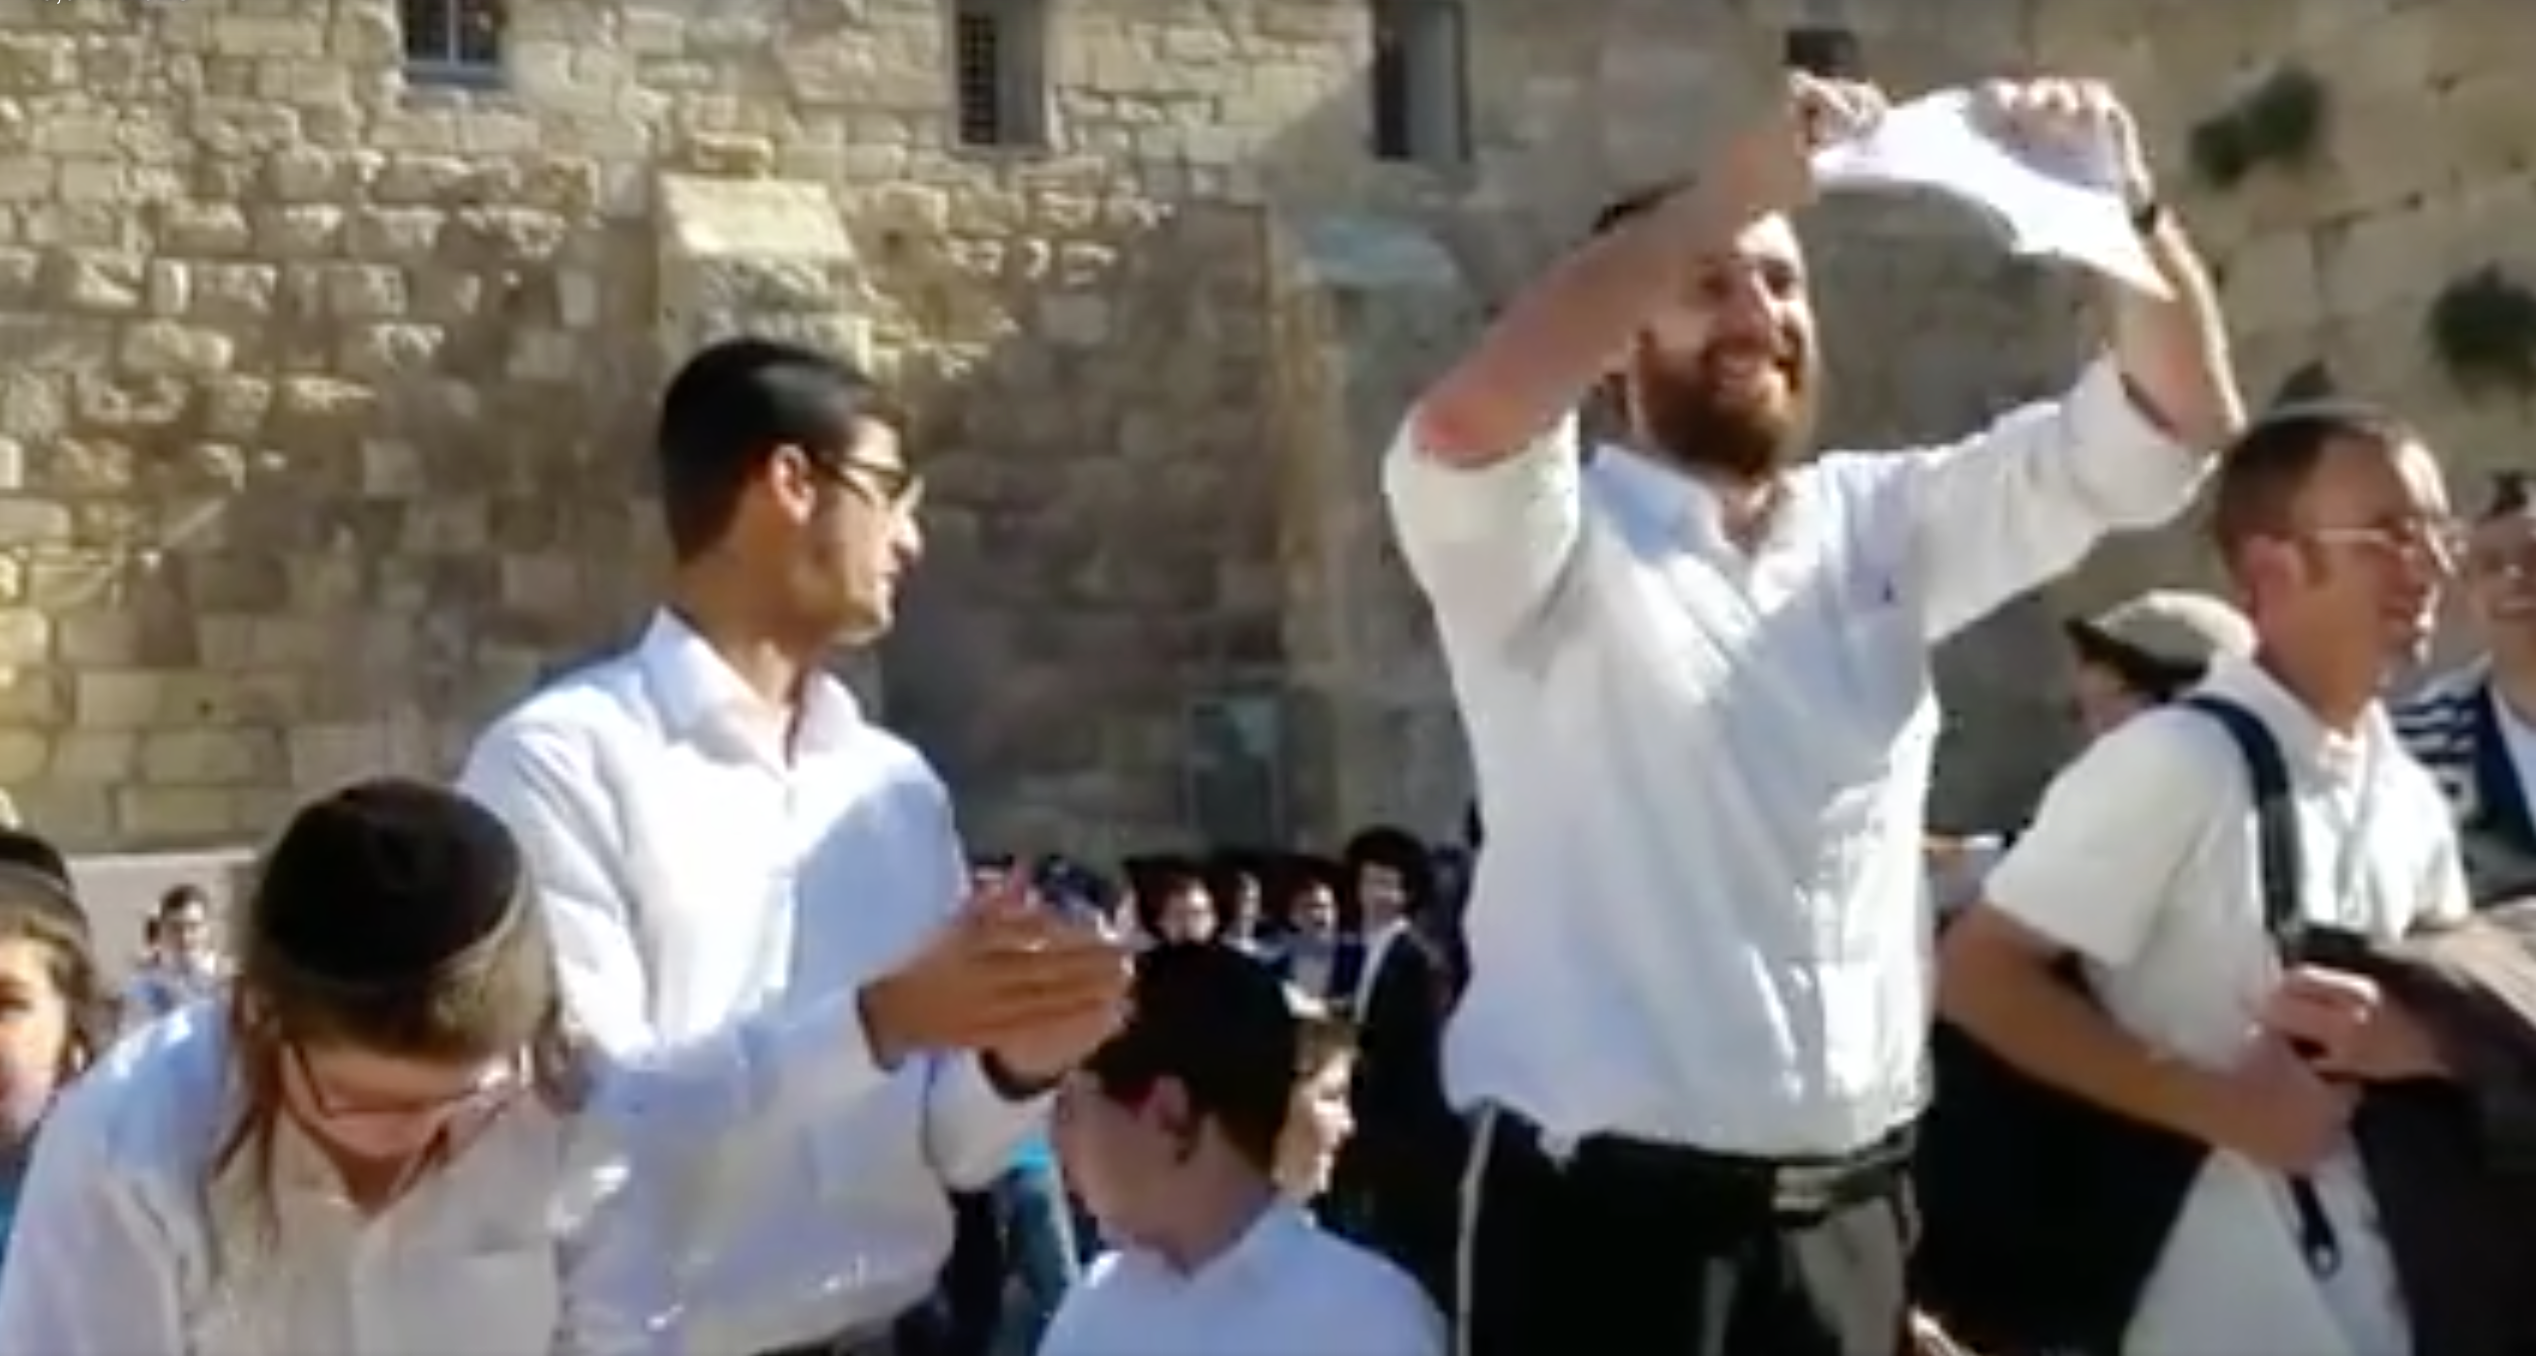 An ultra-Orthodox man rips up a progressive prayer book in protest.